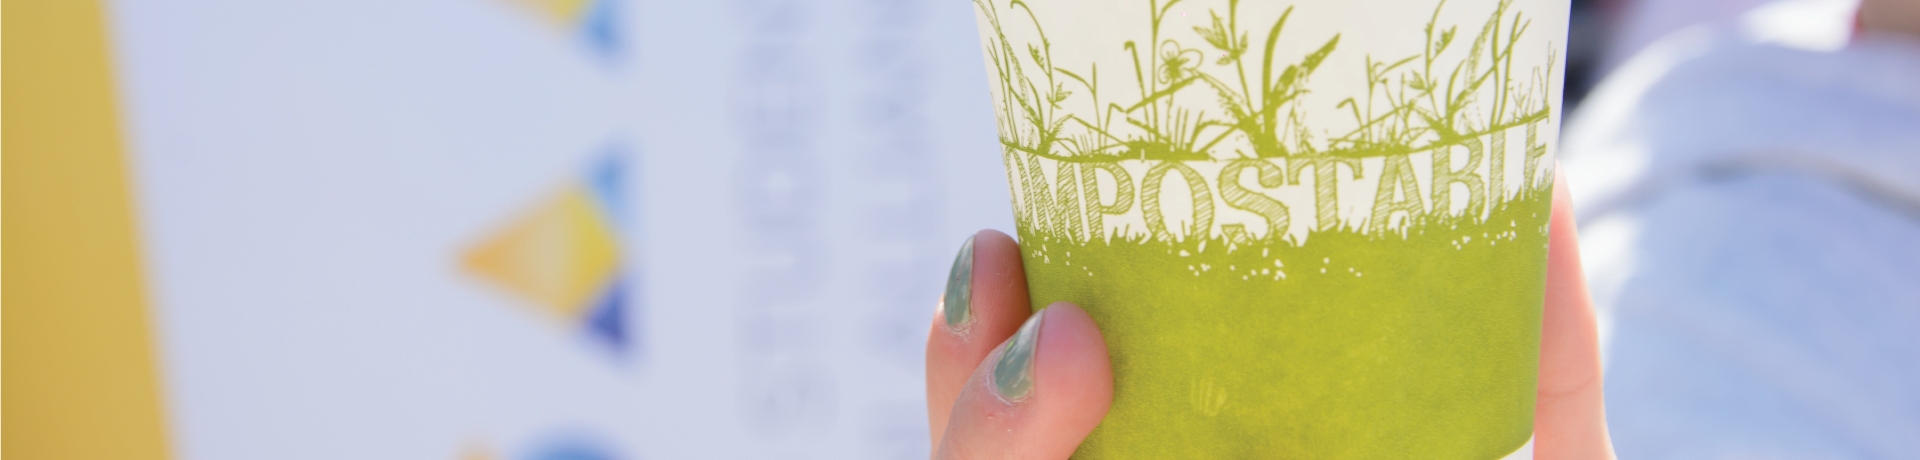 Image of a compostable cup